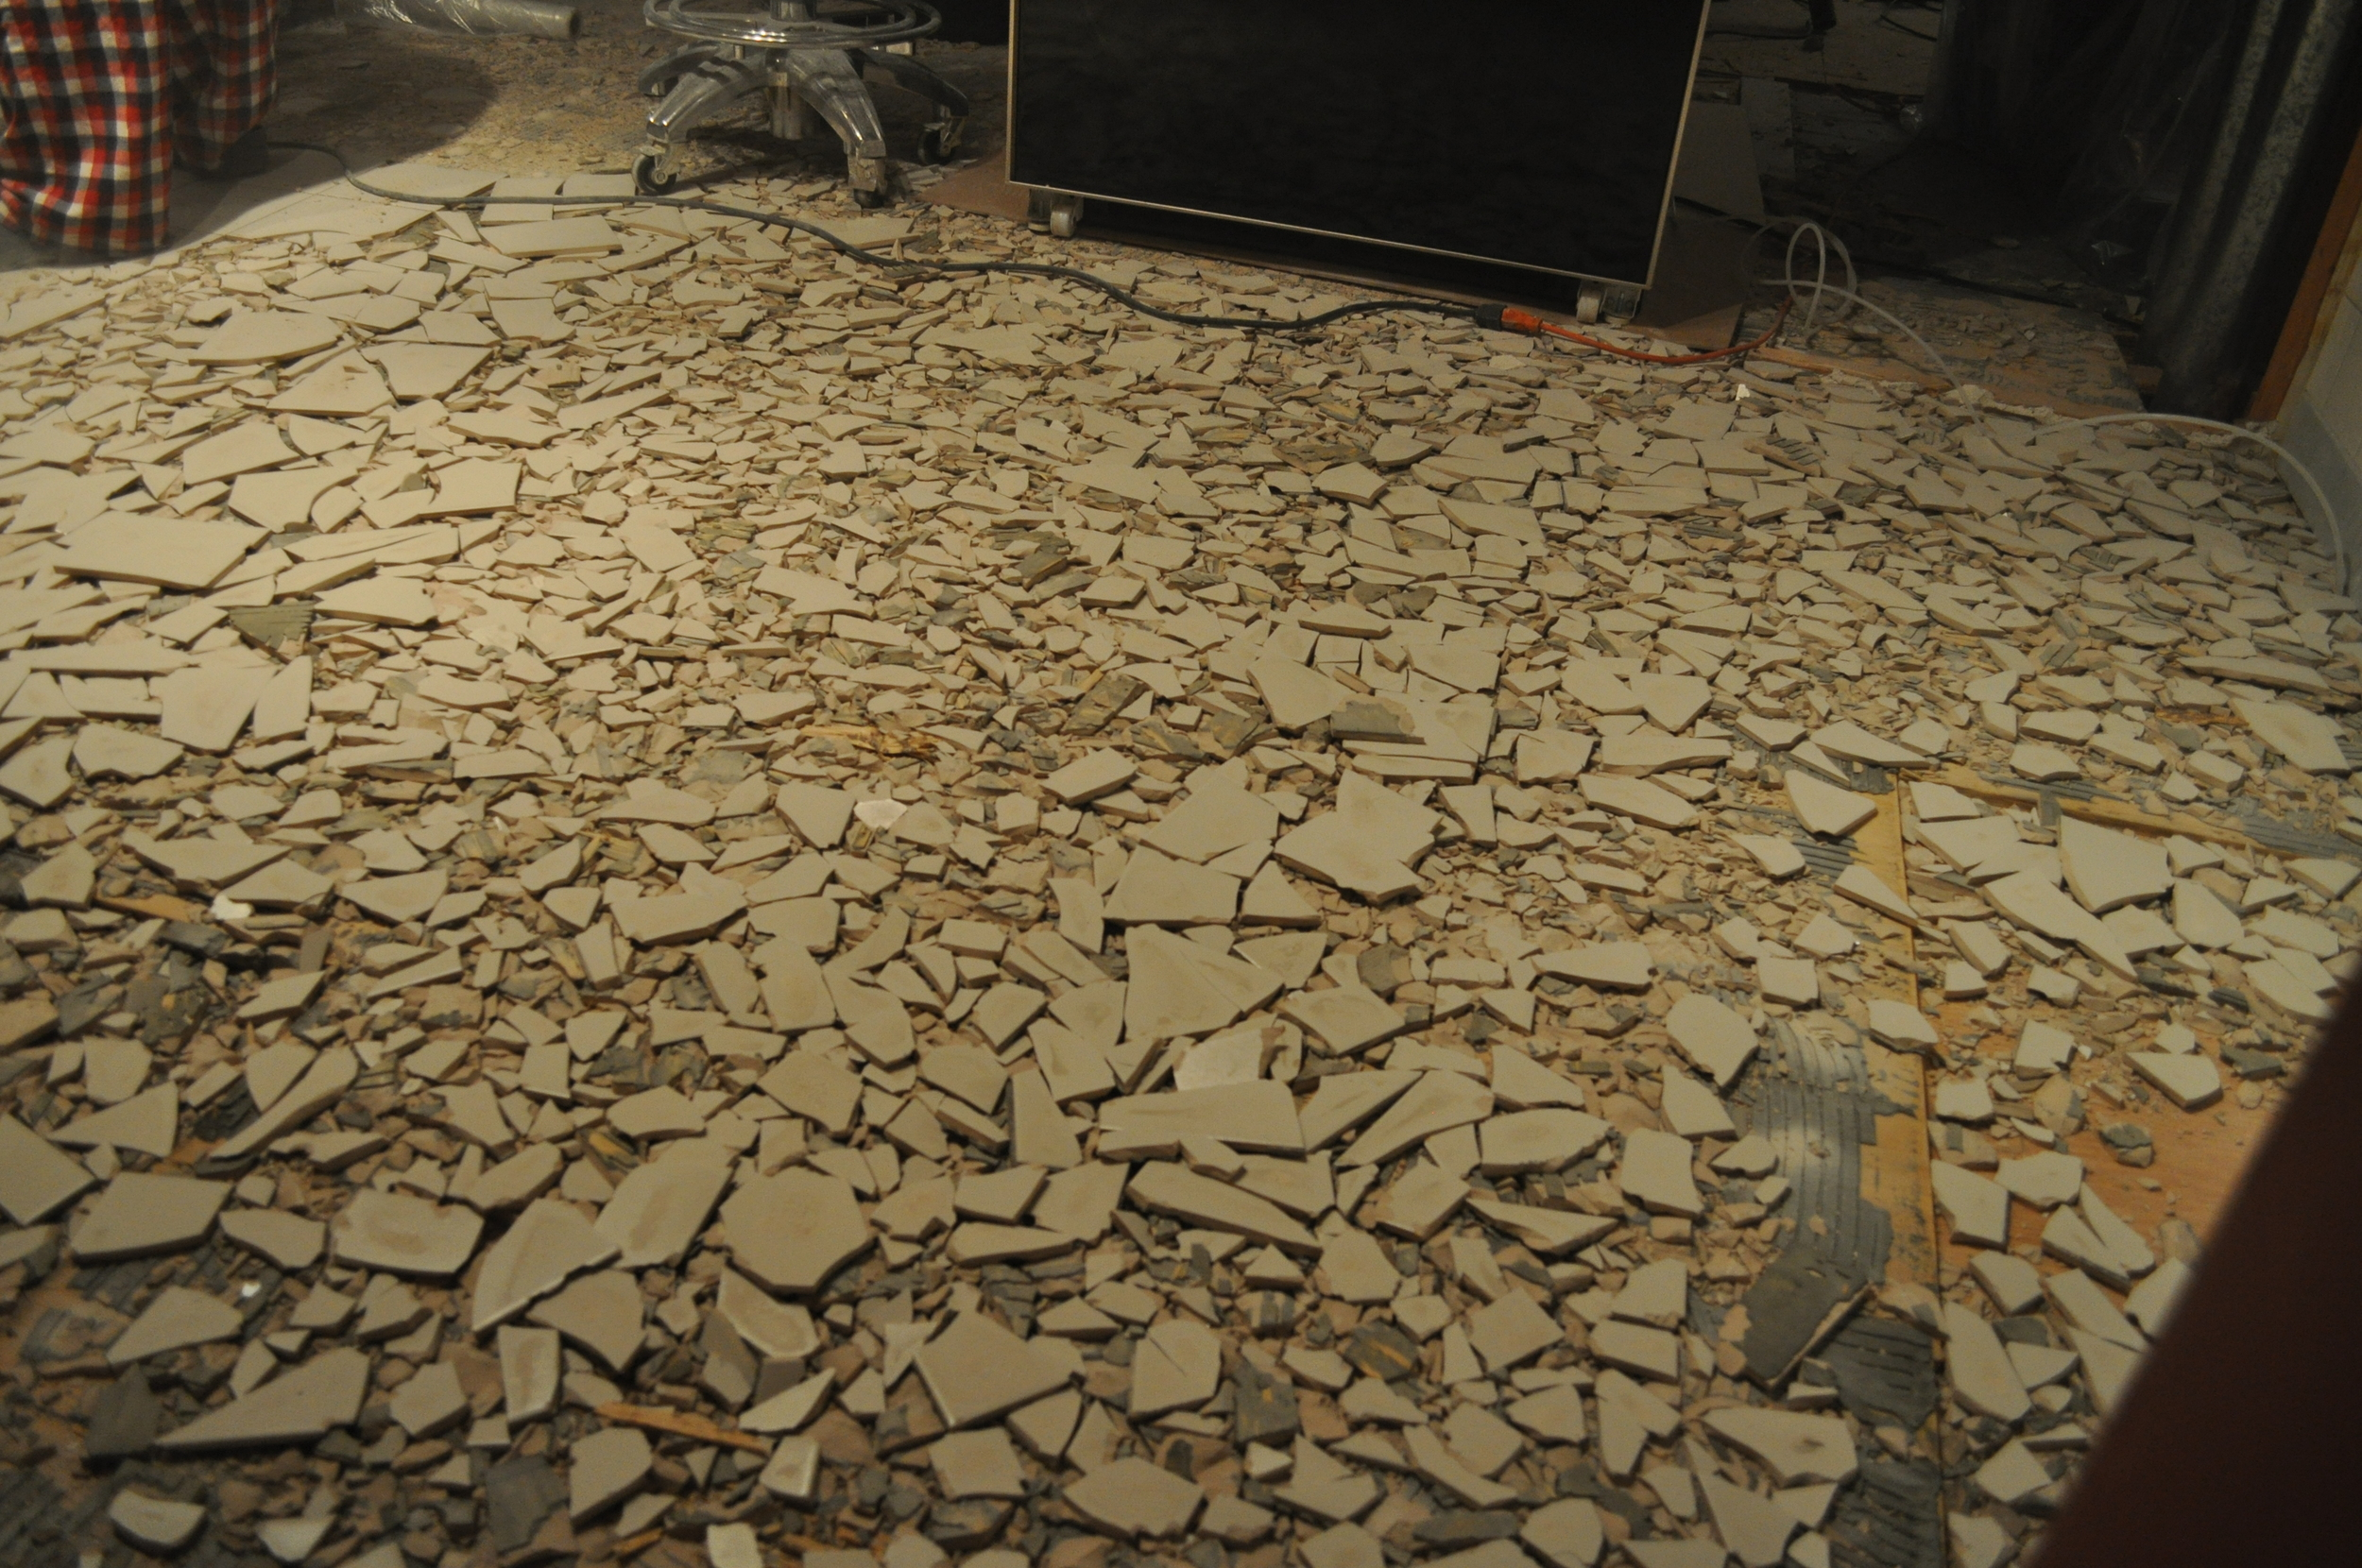 Kitchen tile, in pieces